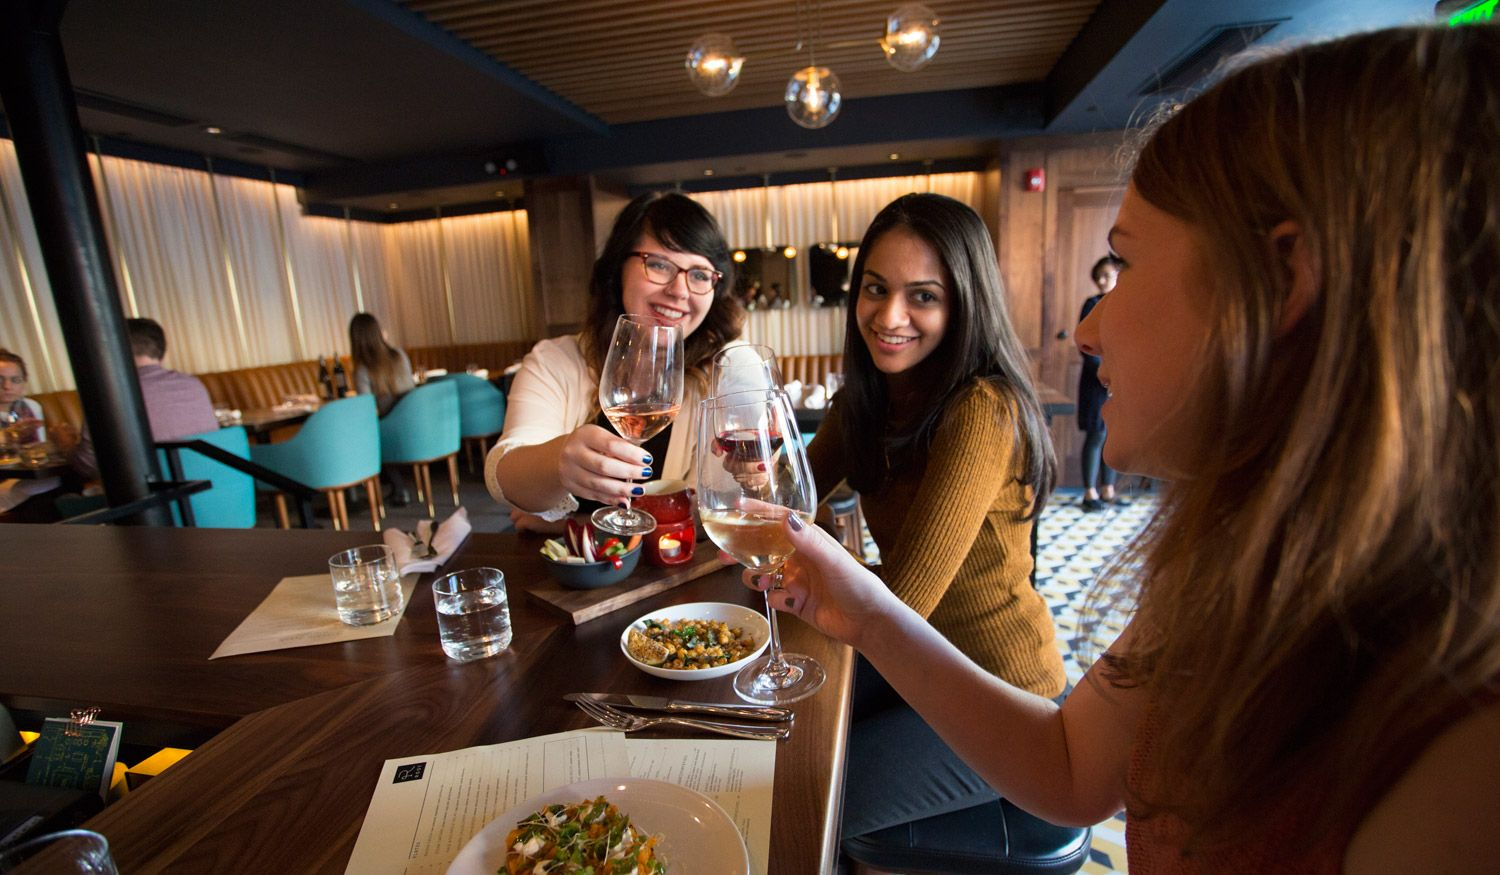 12 Must-Visit Wine Bars In Philly (Photo by C. Smyth for Visit Philadelphia)